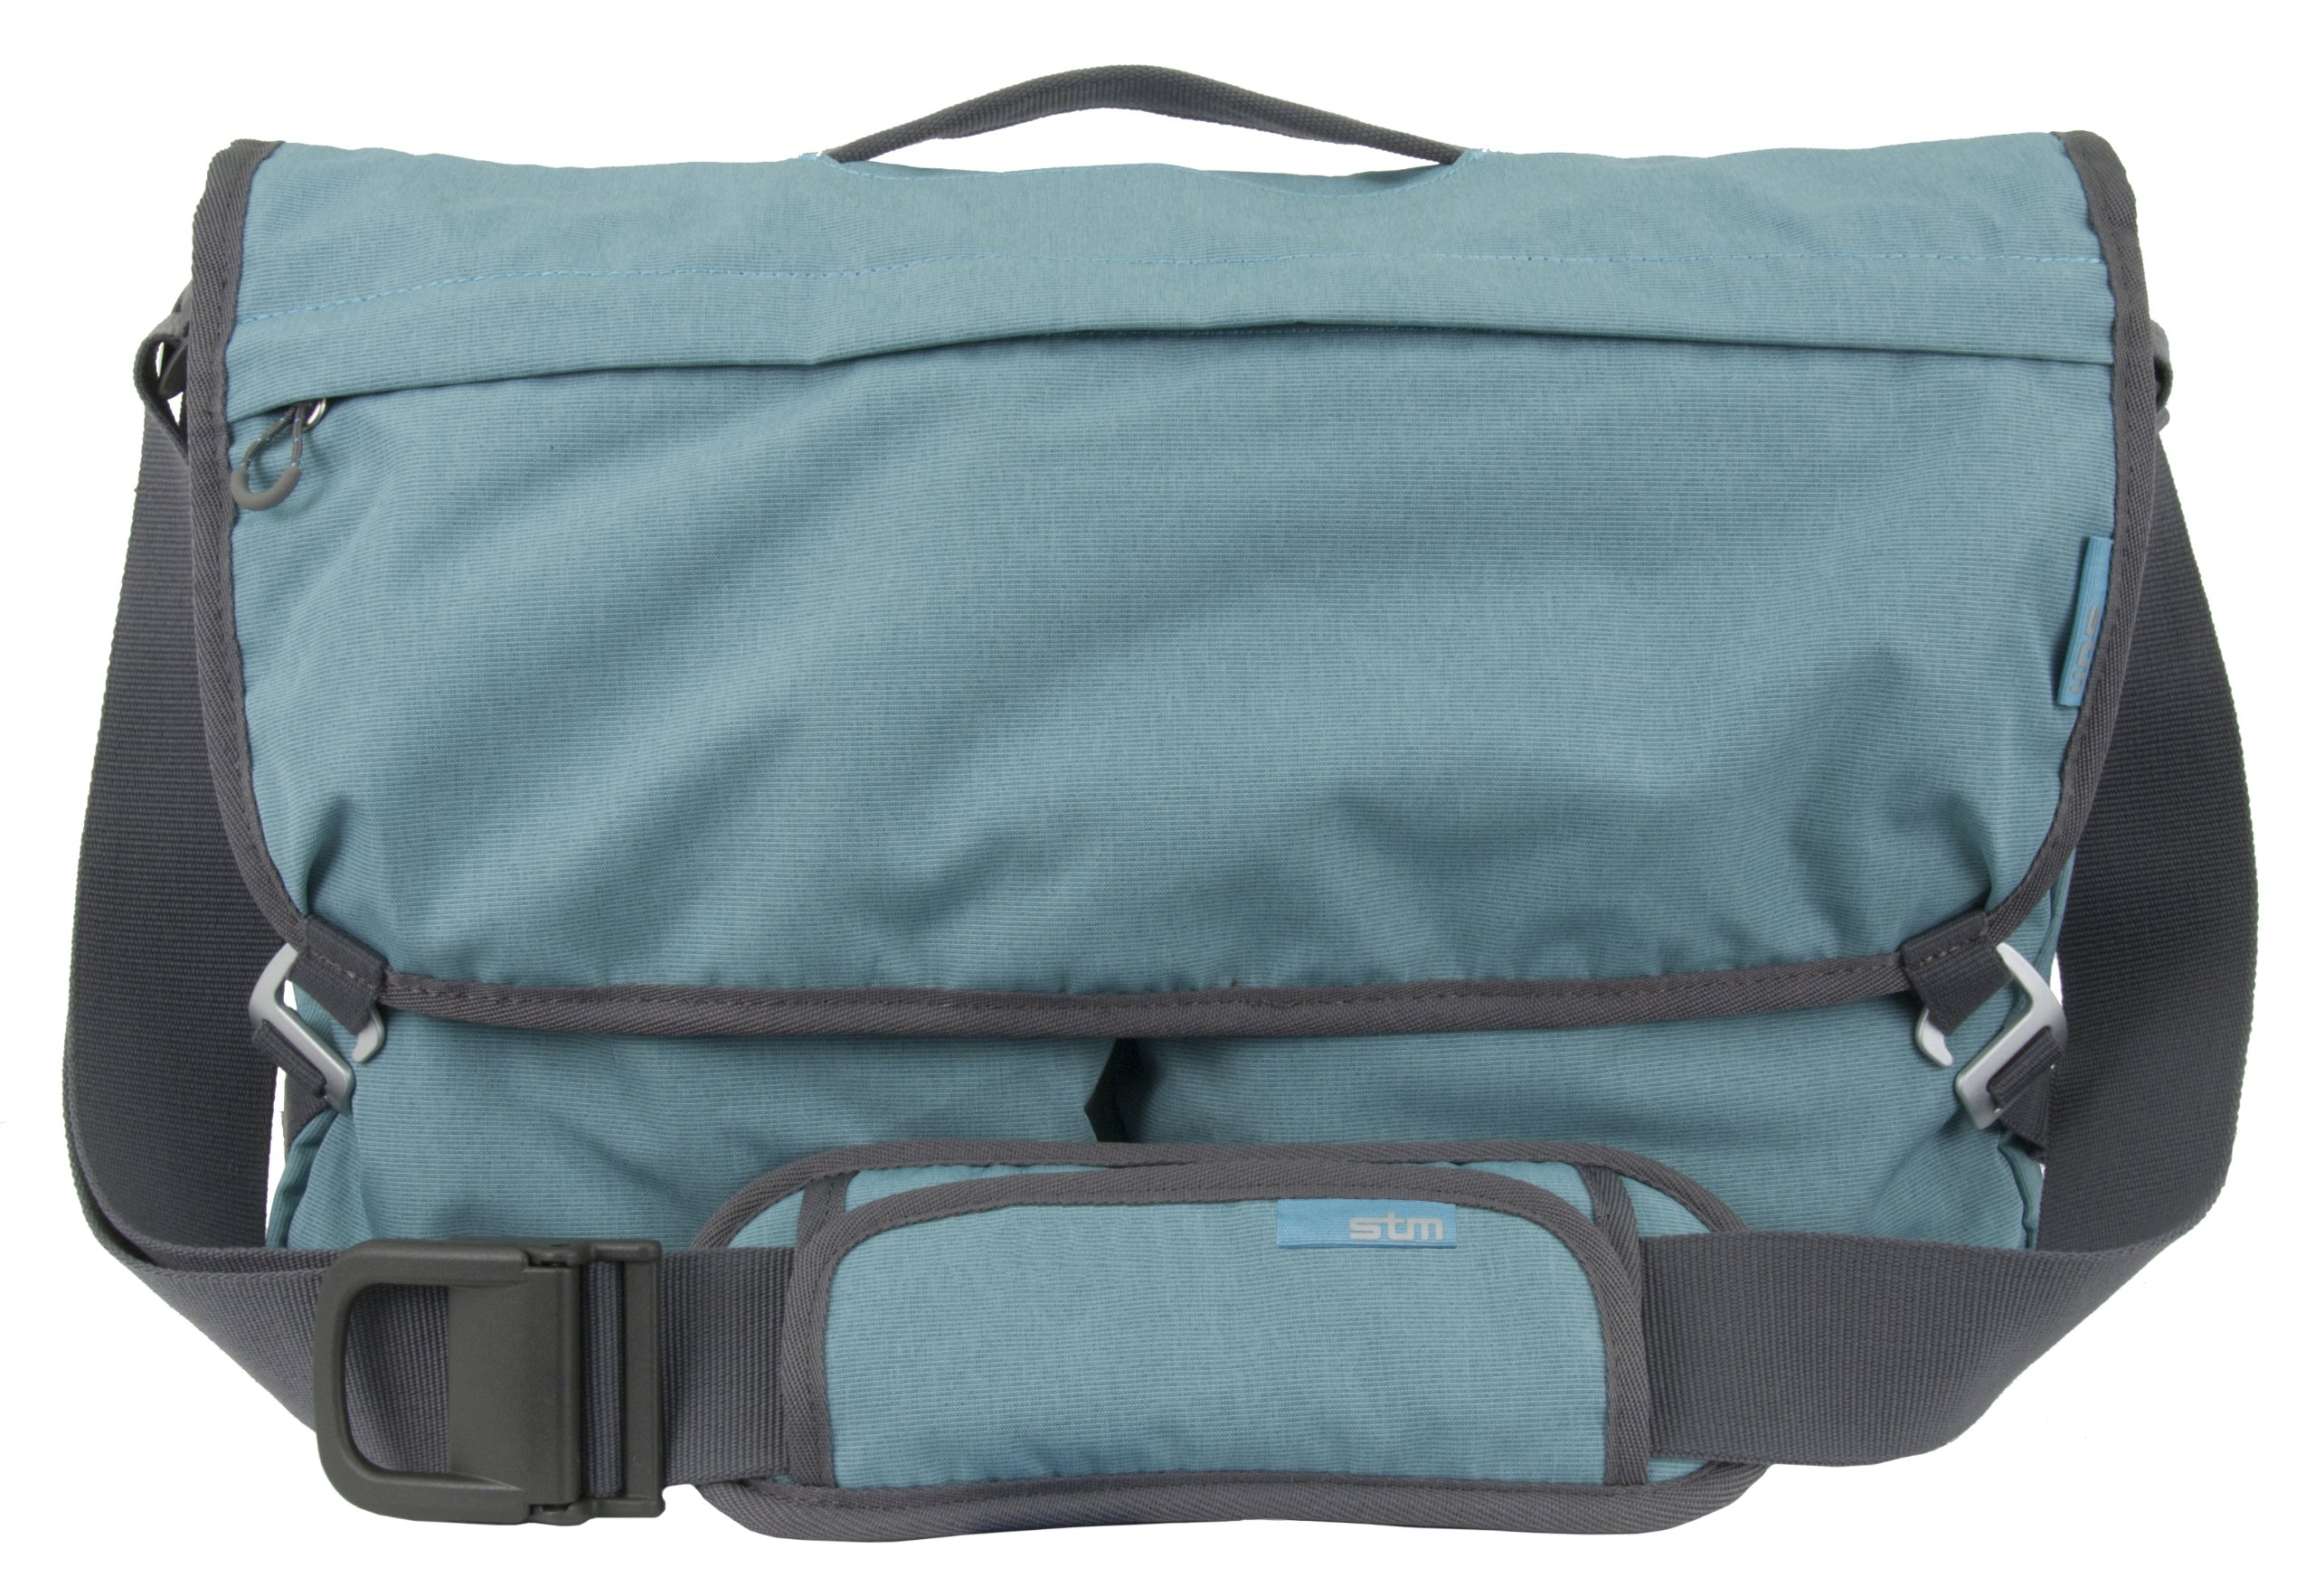 STM Nomad Shoulder Bag with Removable Computer Sleeve and Integrated iPad/Tablet Pocket (XS) for 11-Inch MacBooks and Laptops (dp-3200-18)